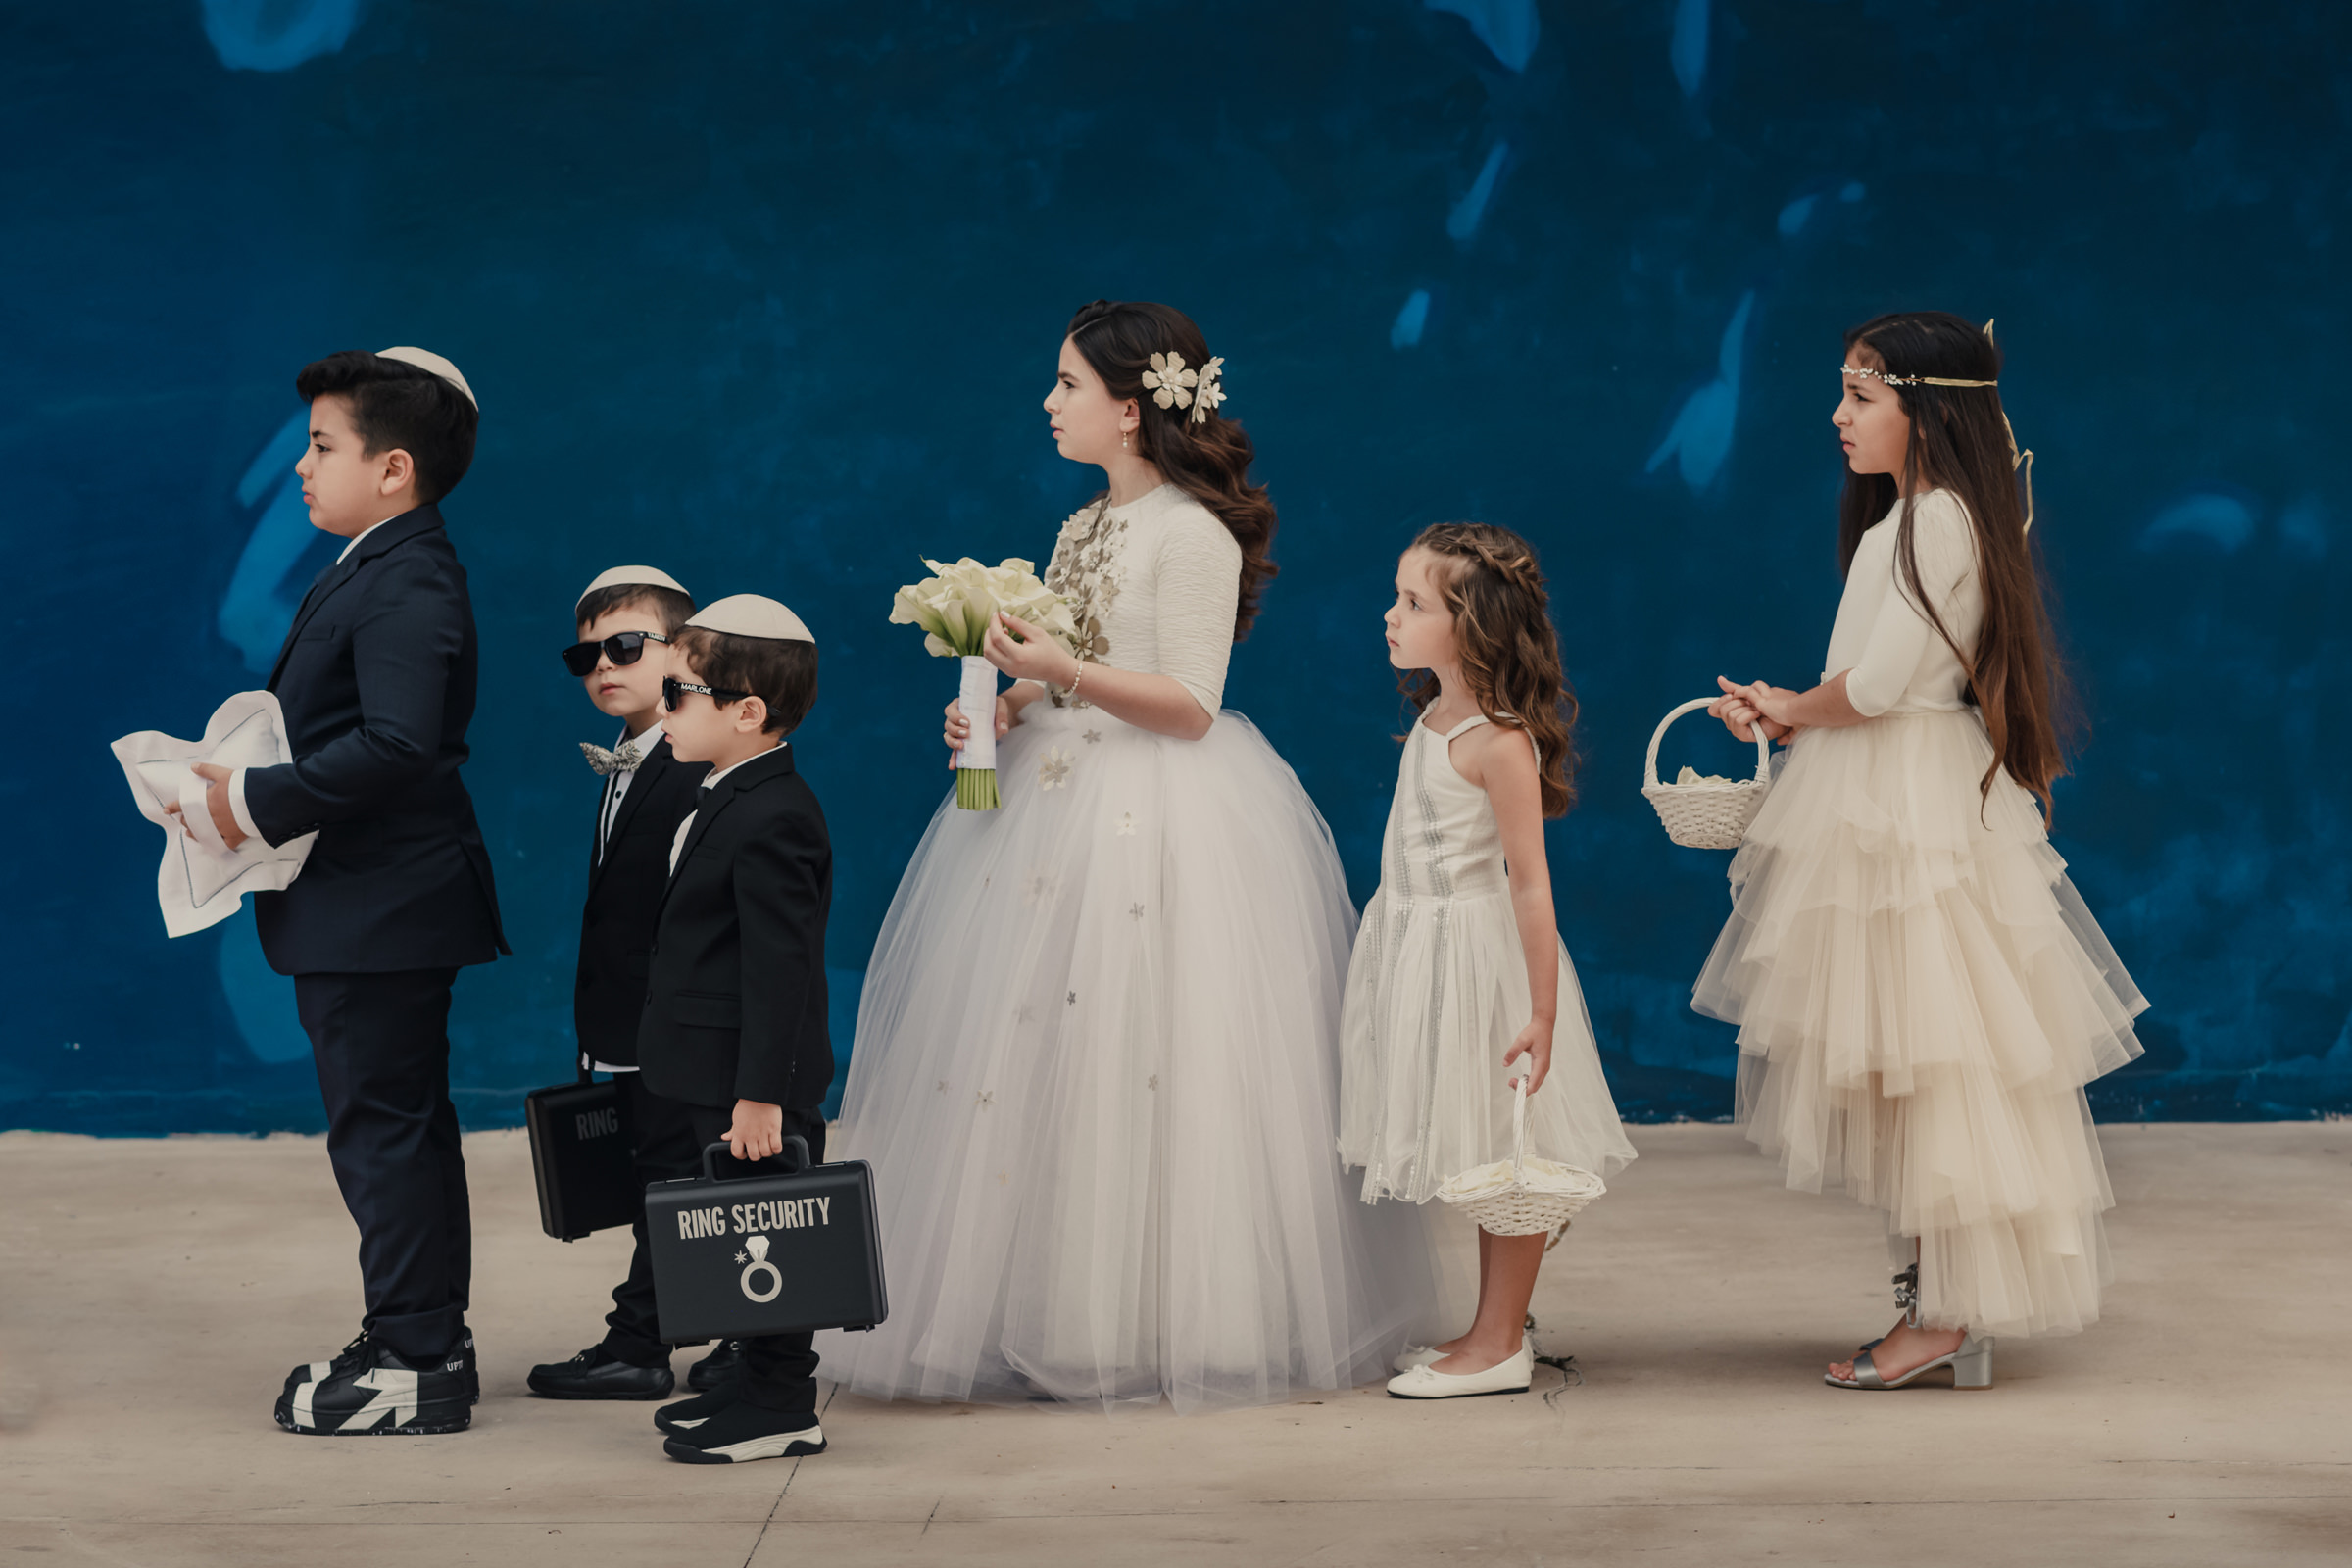 Bridal party boys wearing security suits and yarmulkes - photo by El Marco Rojo